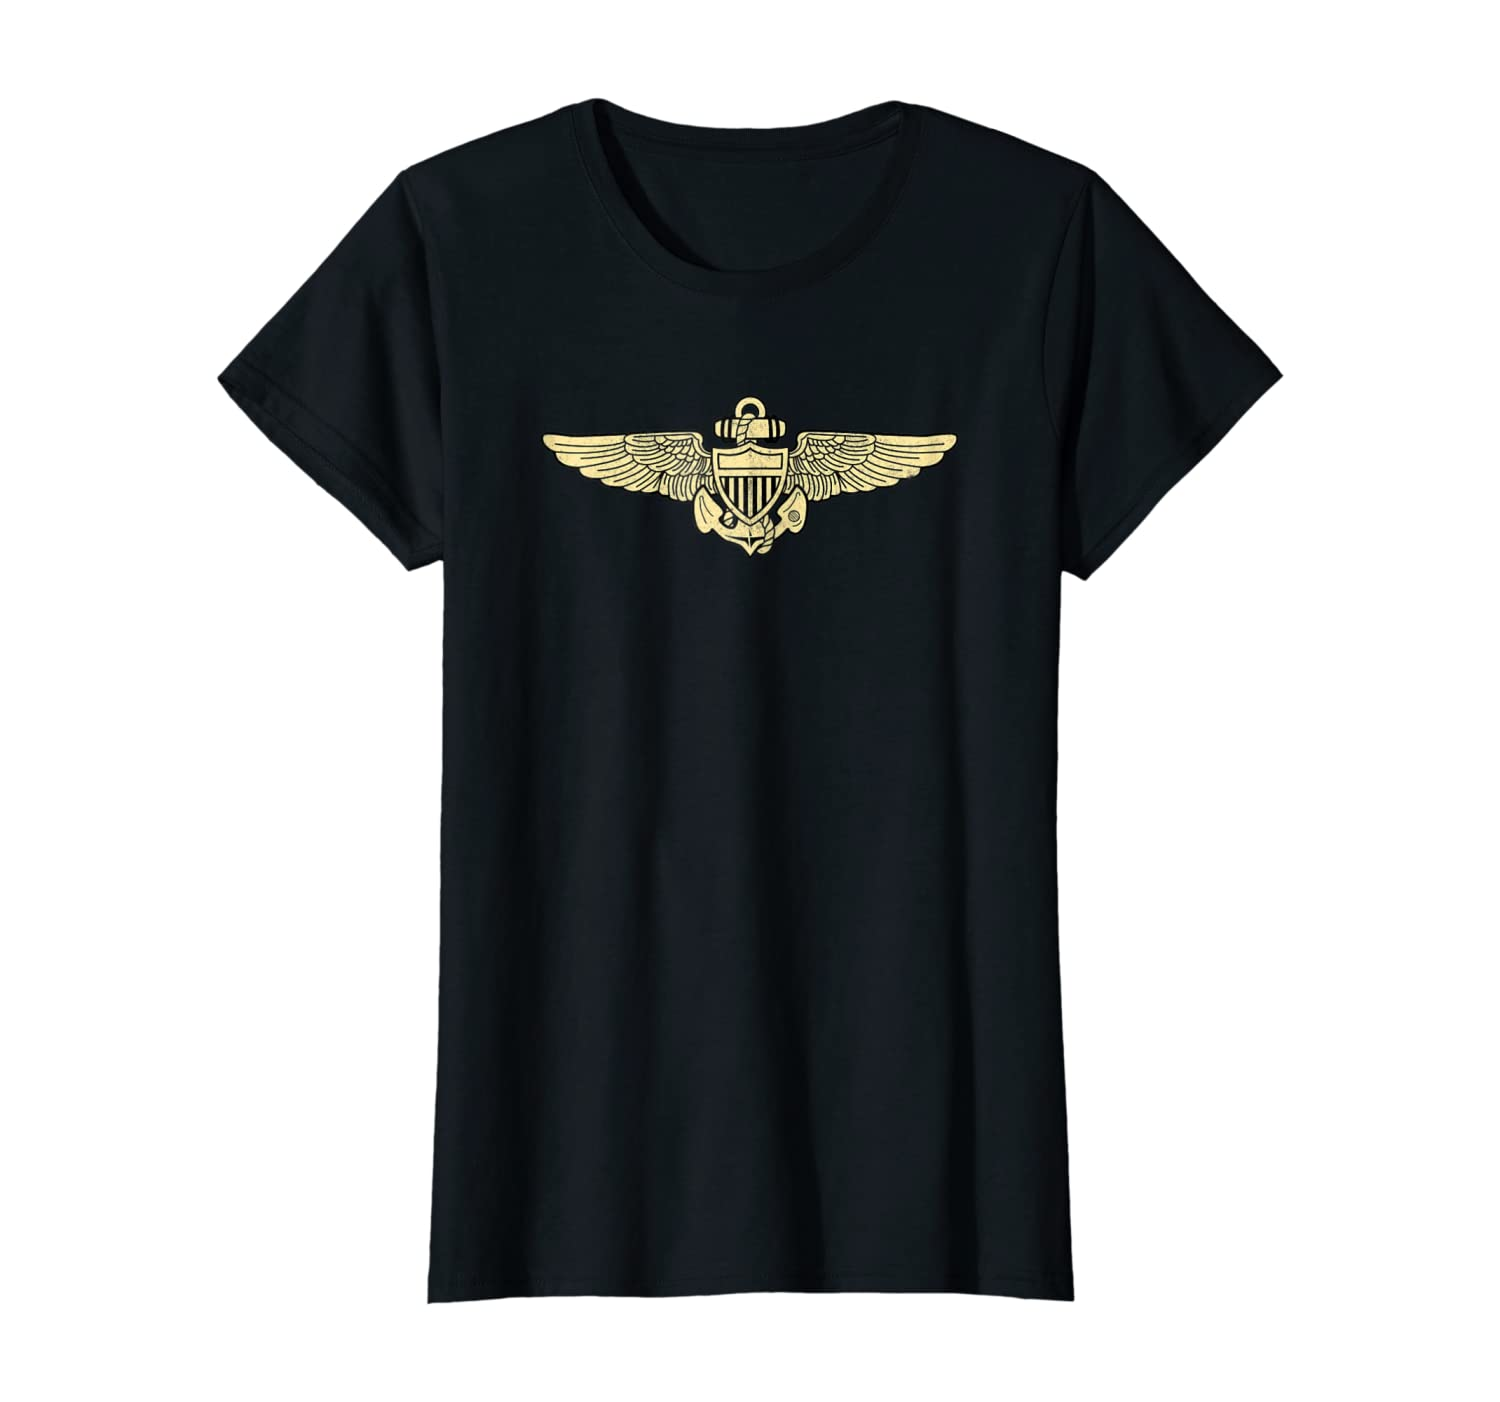 Naval Aviator Shirt Naval Officer Pilot Wings Tee